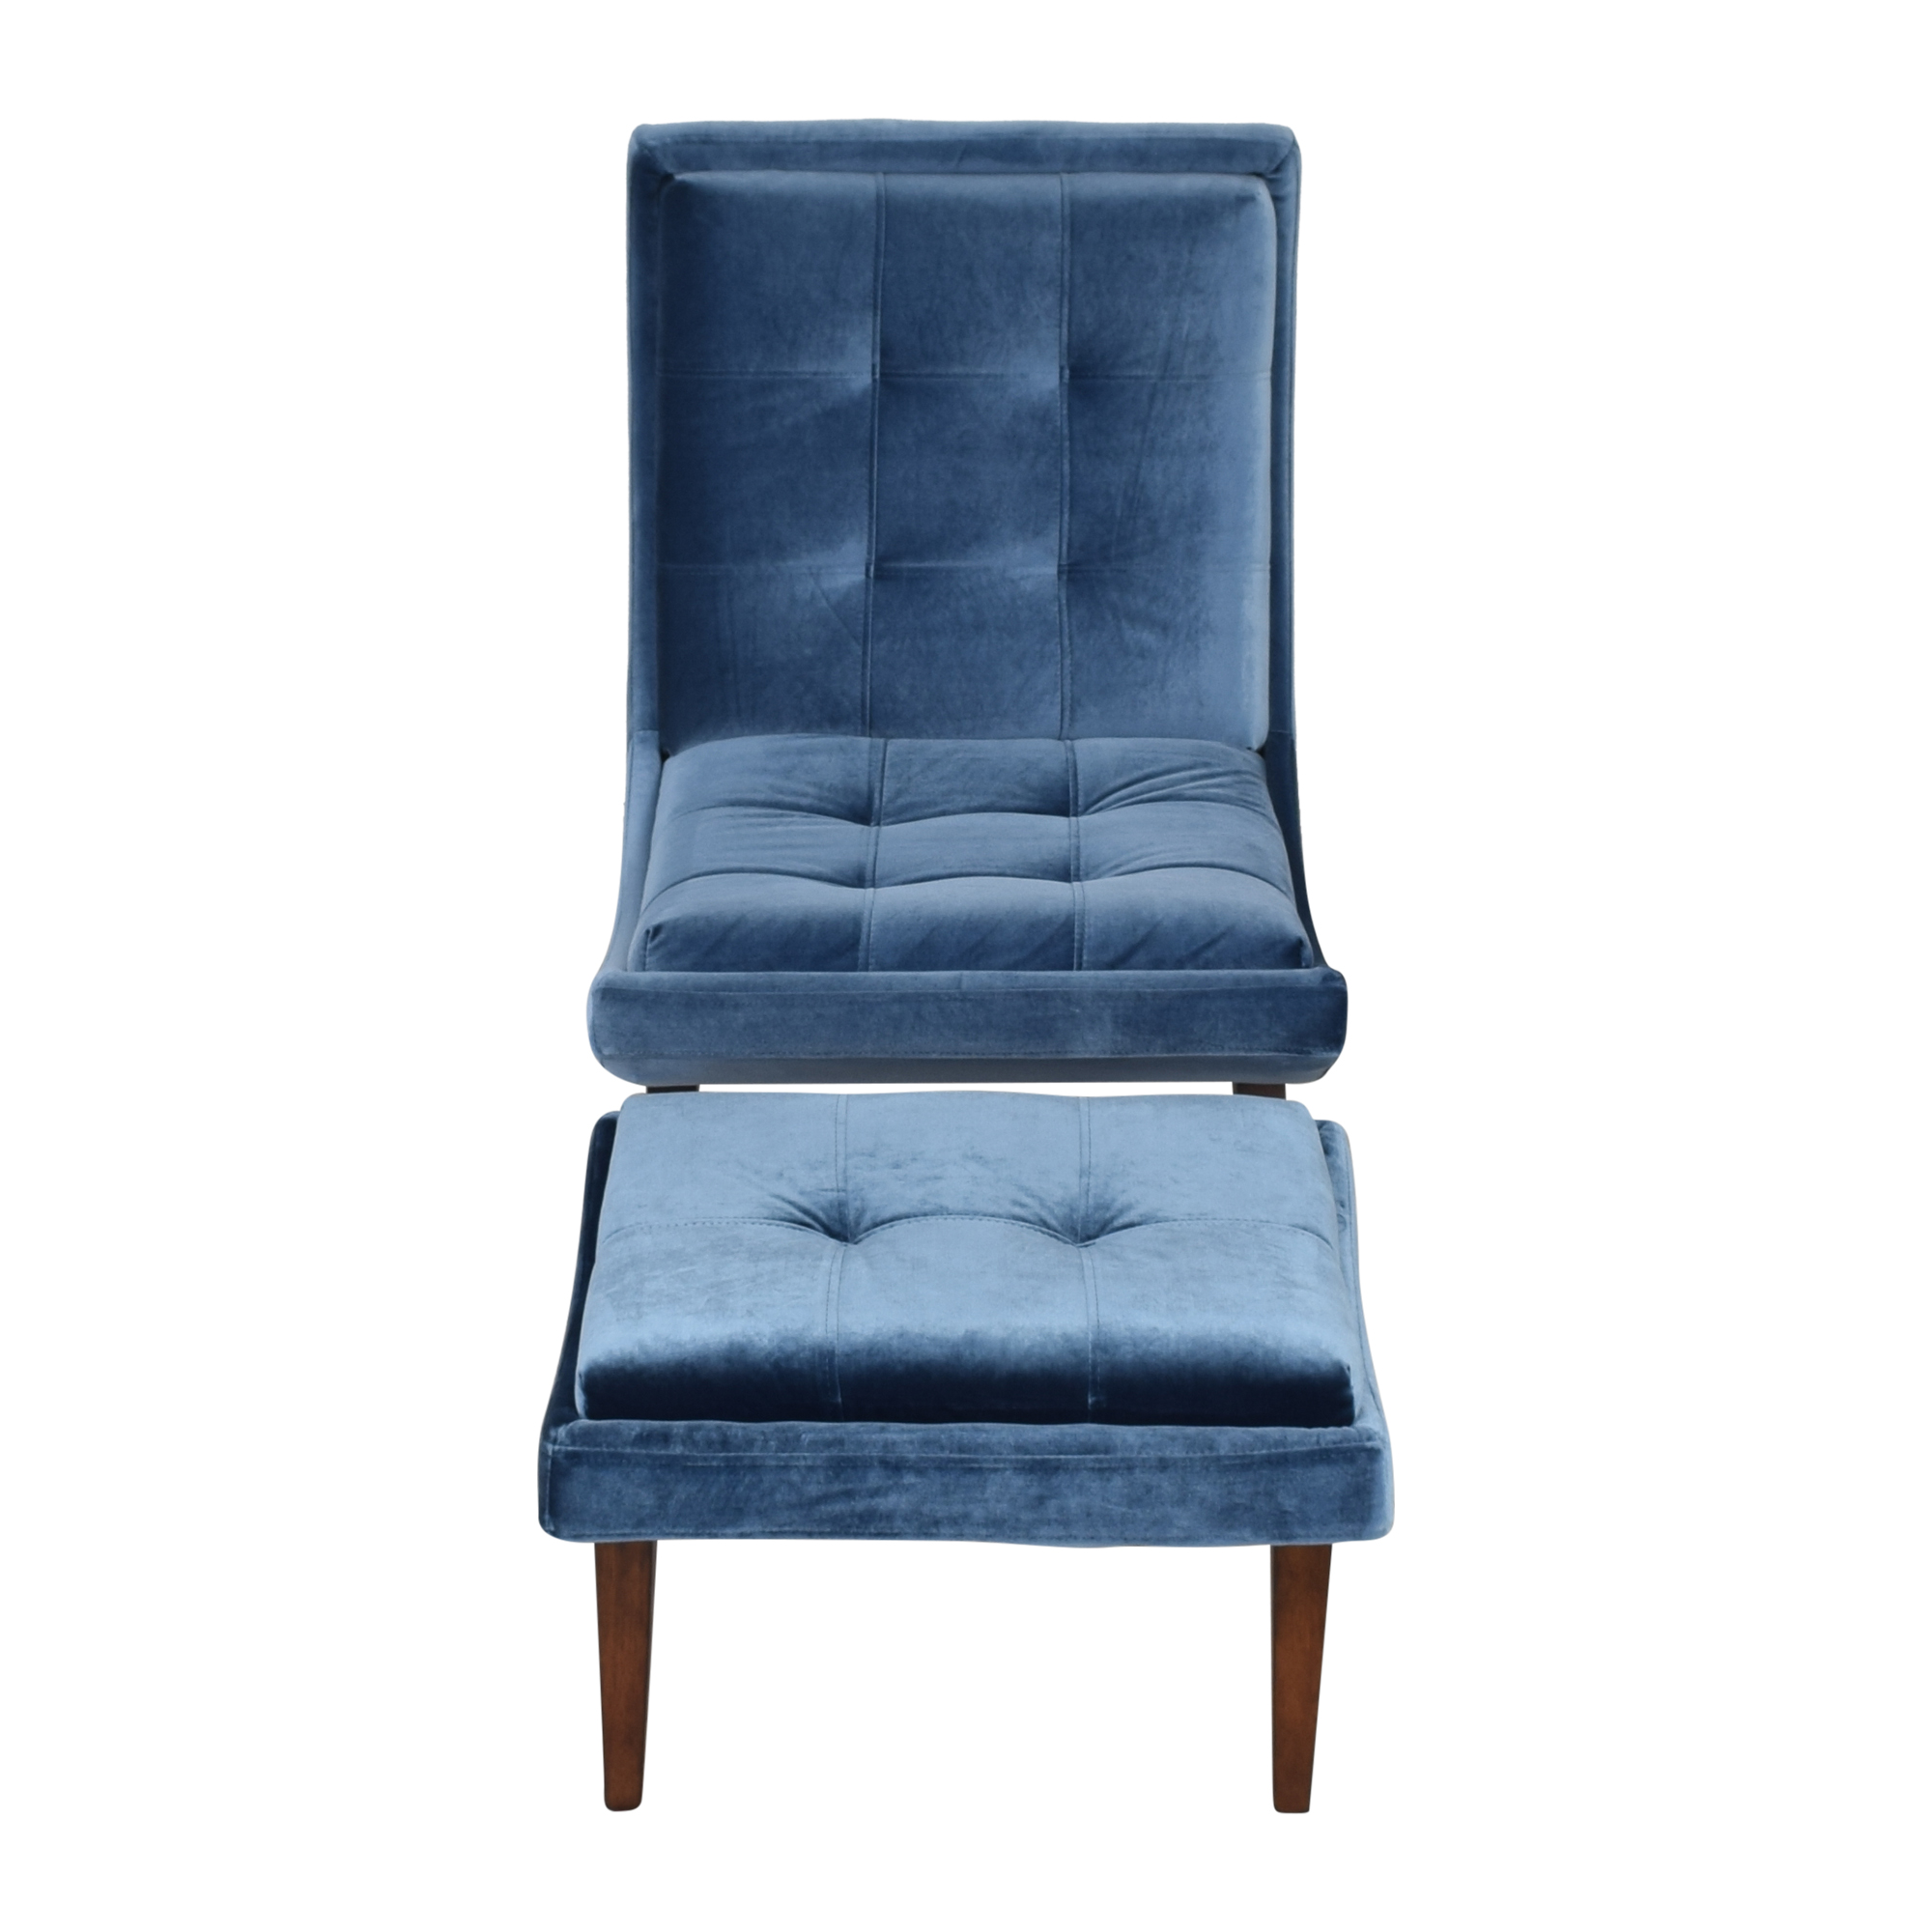 Modway Modway Lounge Chair and Ottoman second hand